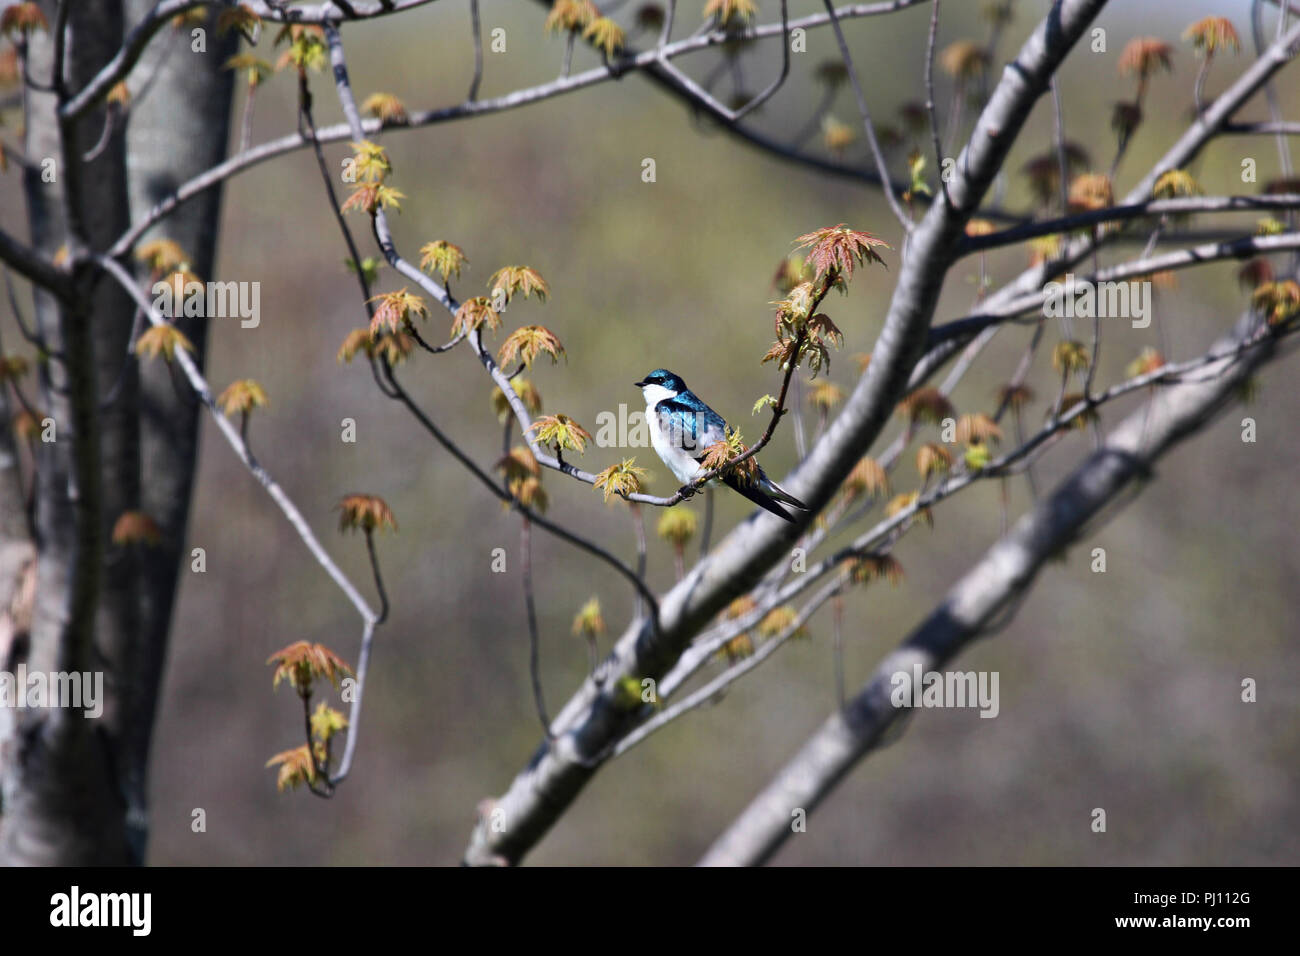 Single, male Tree Swallow sitting on a branch of an Emerald Queen Maple tree just beginning to leaf out in spring in Trevor, Wisconsin, USA - Stock Image